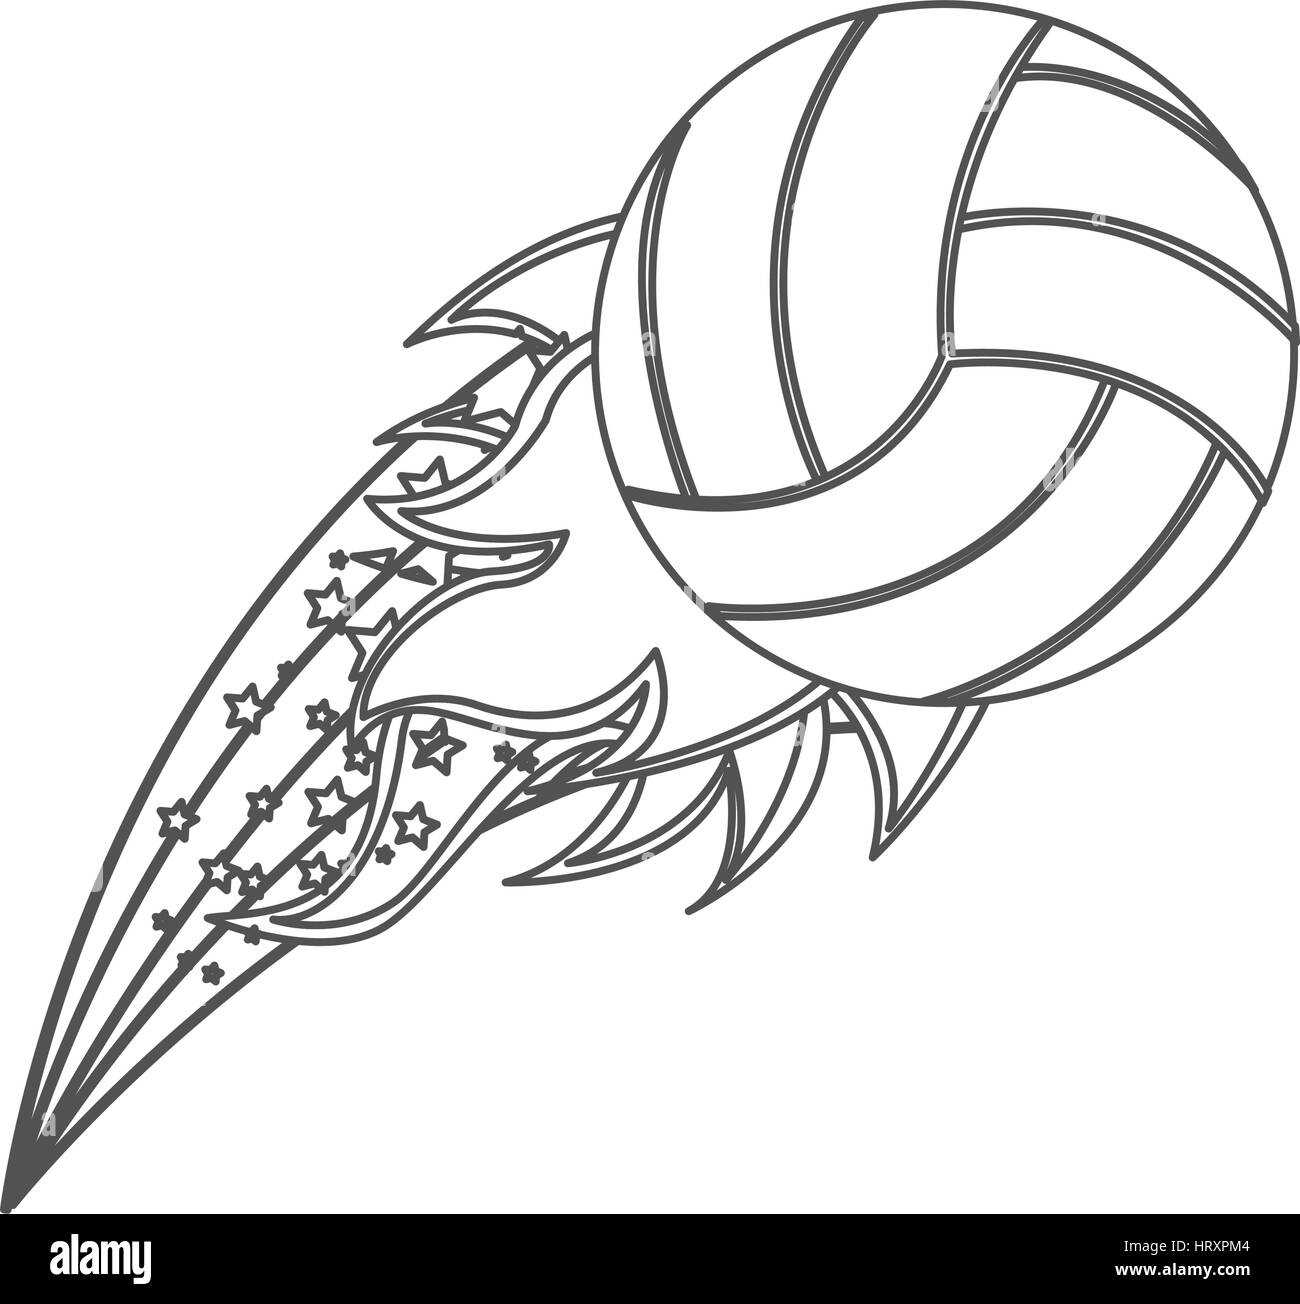 grayscale contour with olympic flame with volleyball ball - Stock Vector